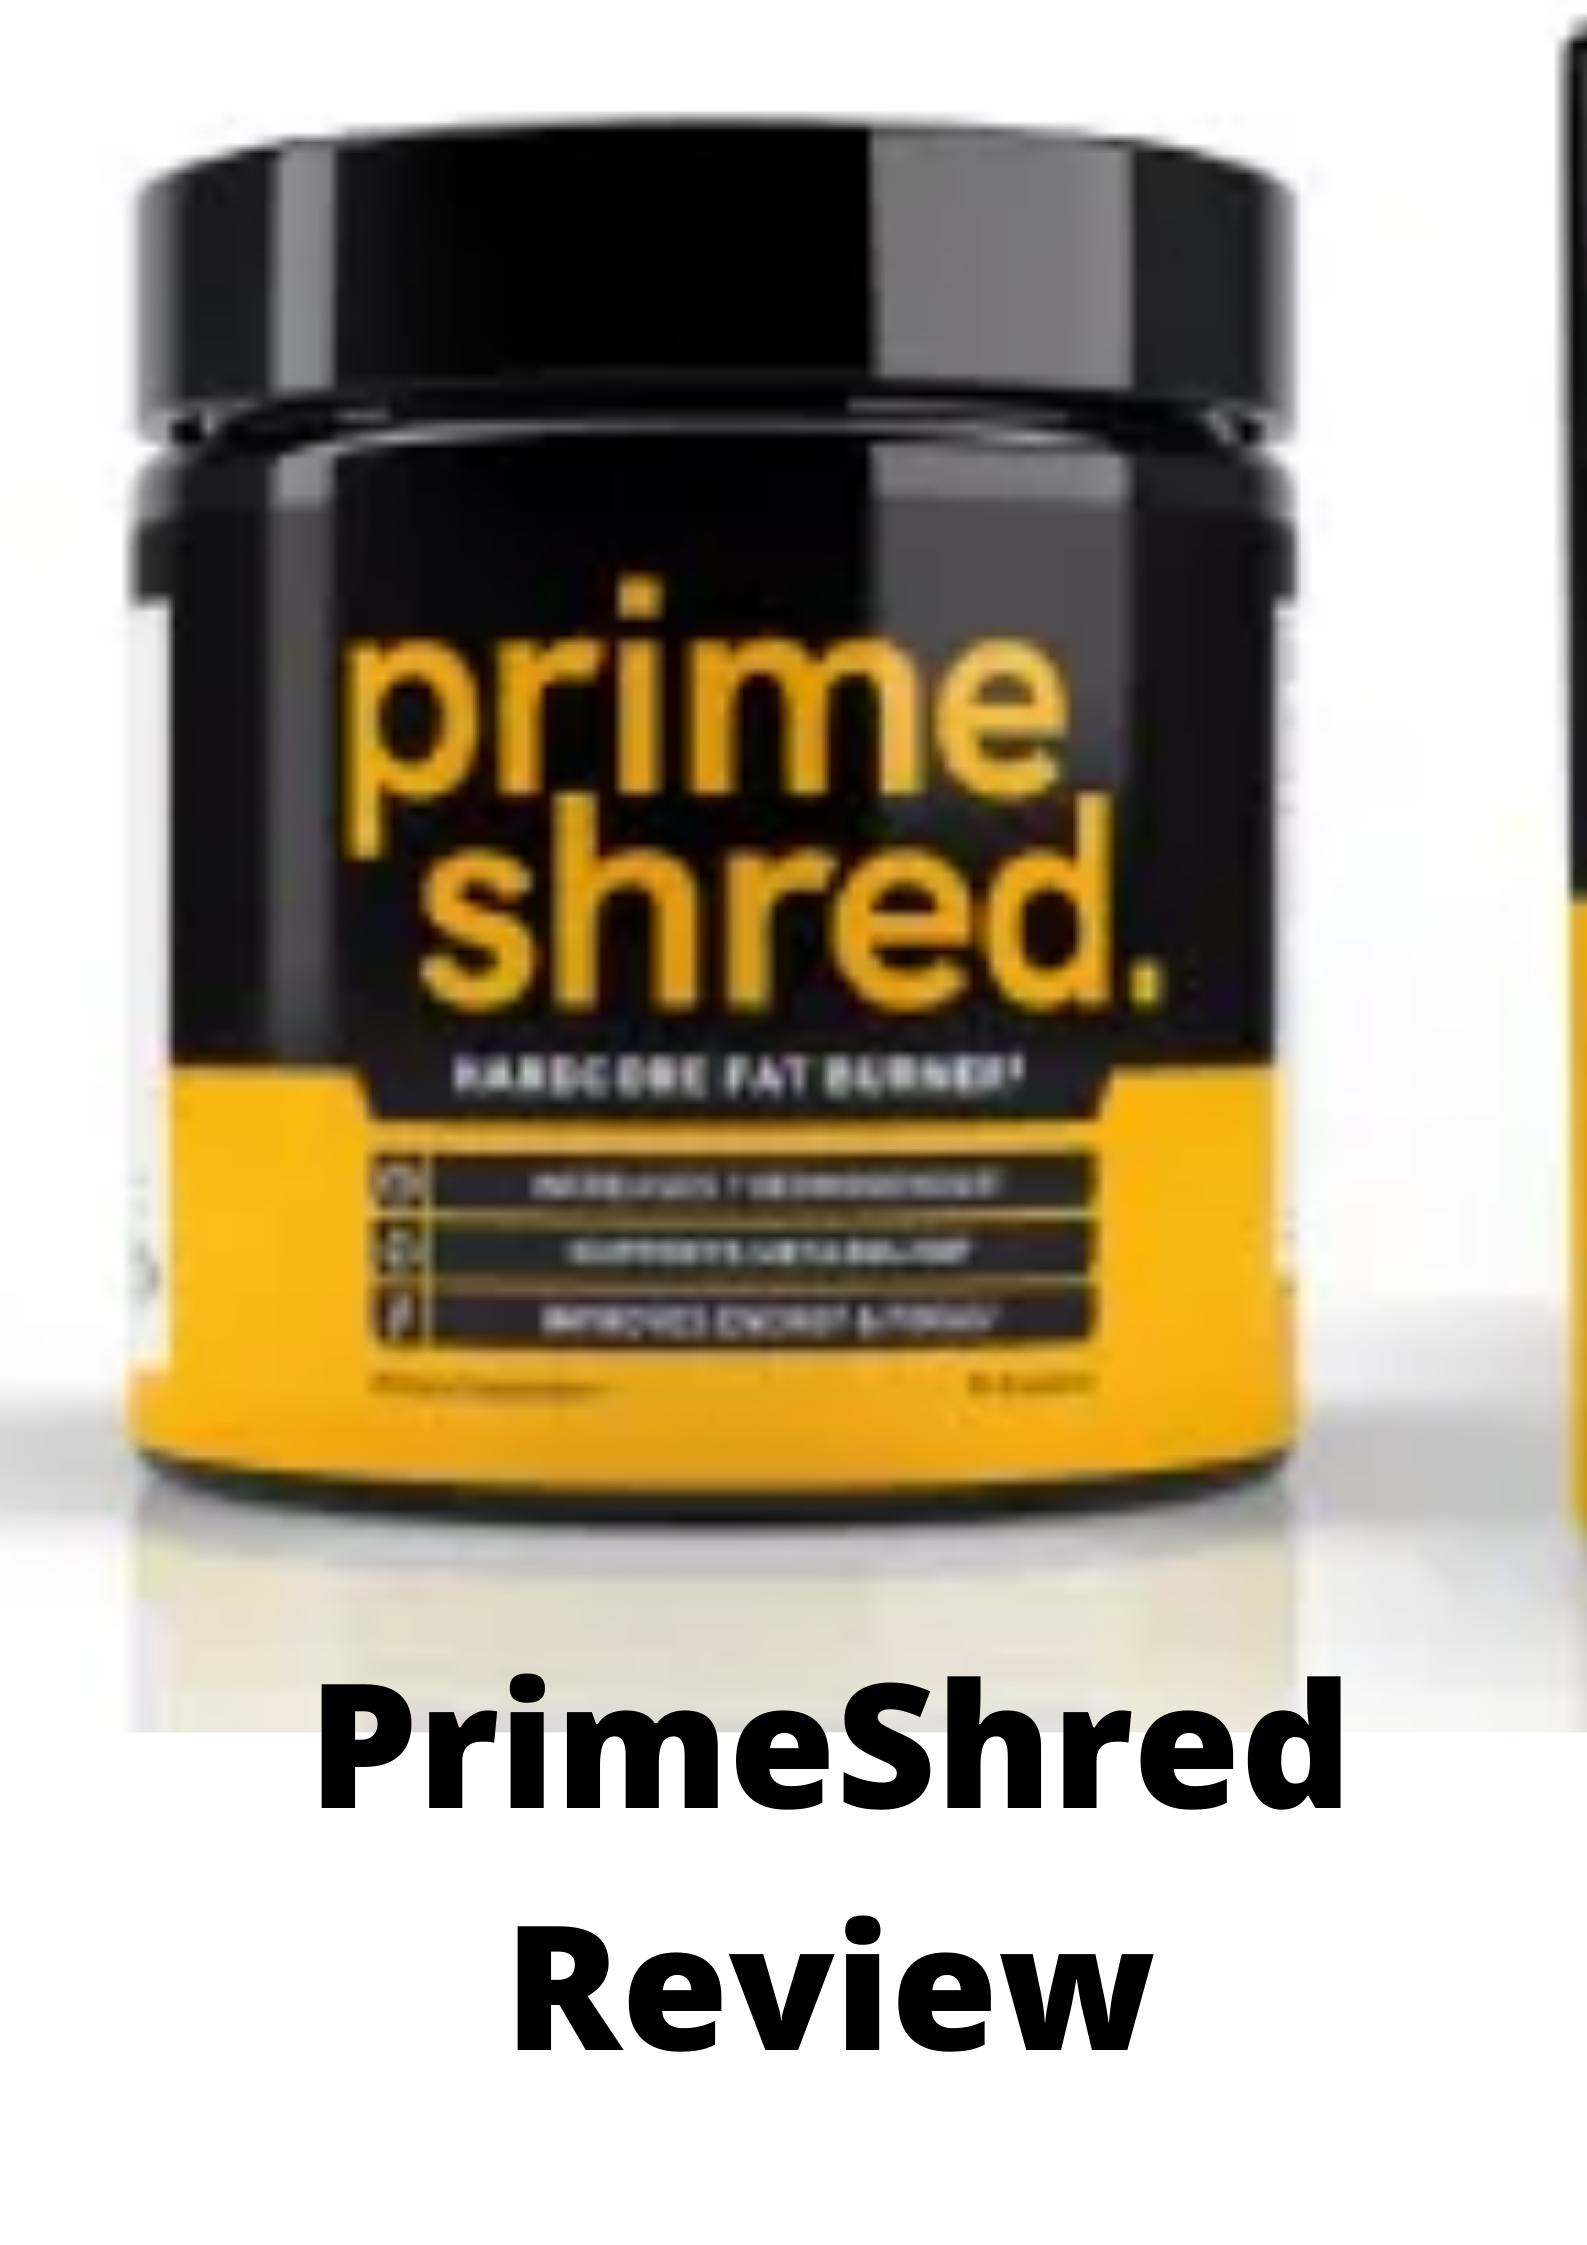 PRIMESHRED REVIEW: IS IT WORTH THE MONEY?